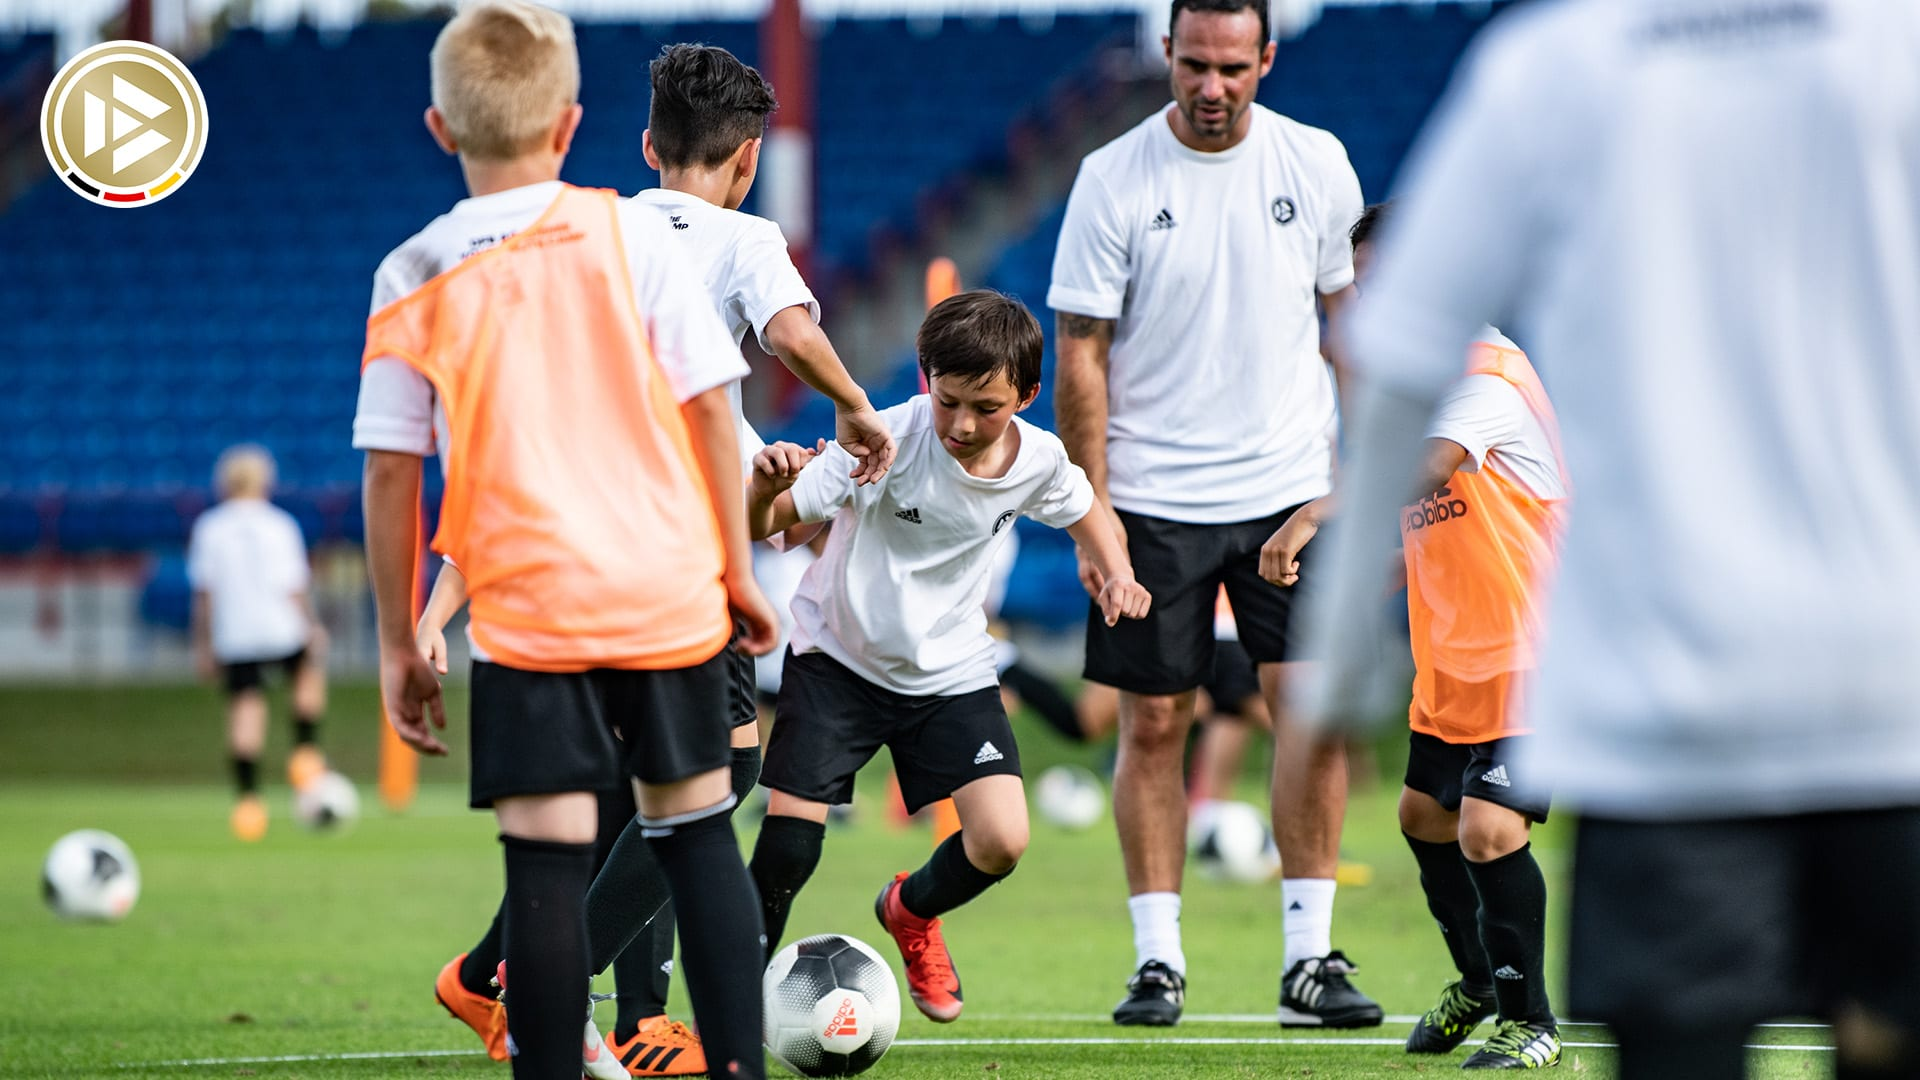 FORT LAUDERDALE, FL - DECEMBER 28: German professional Coach Alexander Nouri and athletes in action during the DFB Elite Youth Soccer Camp at Central Broward Stadium on December 28, 2018 in Fort Lauderdale, Florida. (Photo by Mark Brown/Getty Images) *** Local Caption *** Alexander Nouri